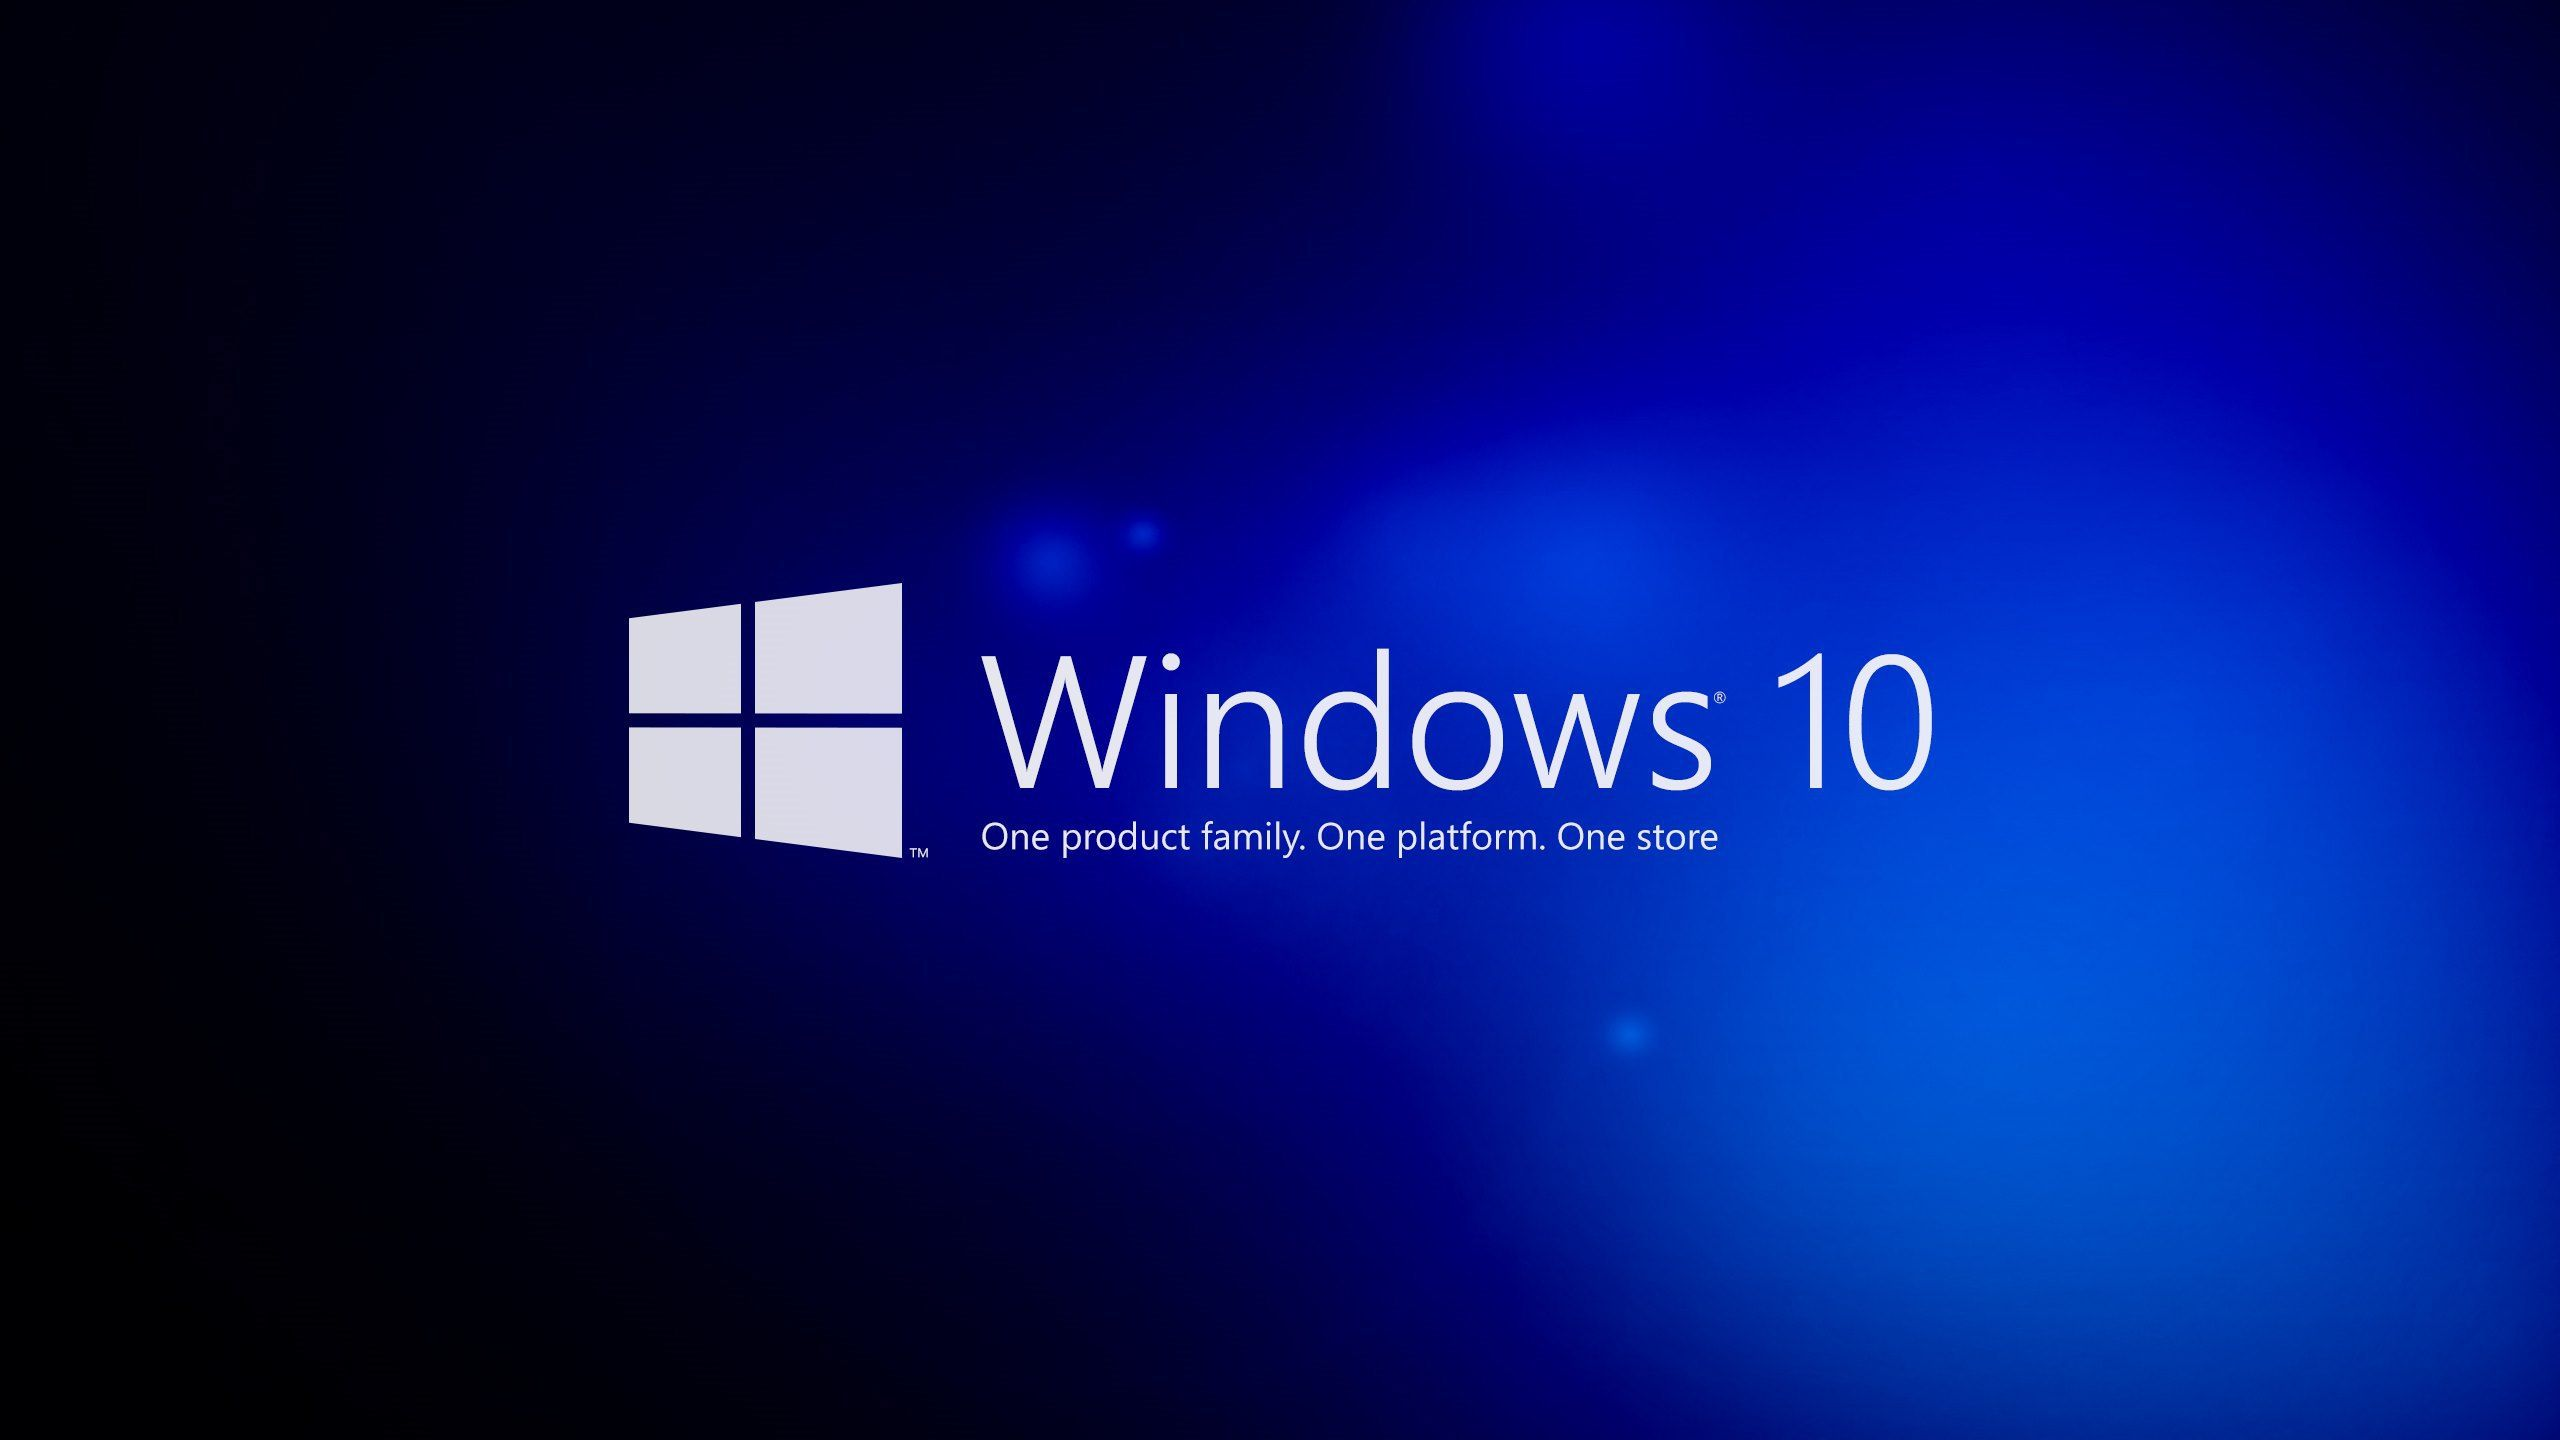 Microsoft Pays 10 000 To Client For Forcing Windows 10 Installation Windows 10 Microsoft Windows 10 Download Windows 10